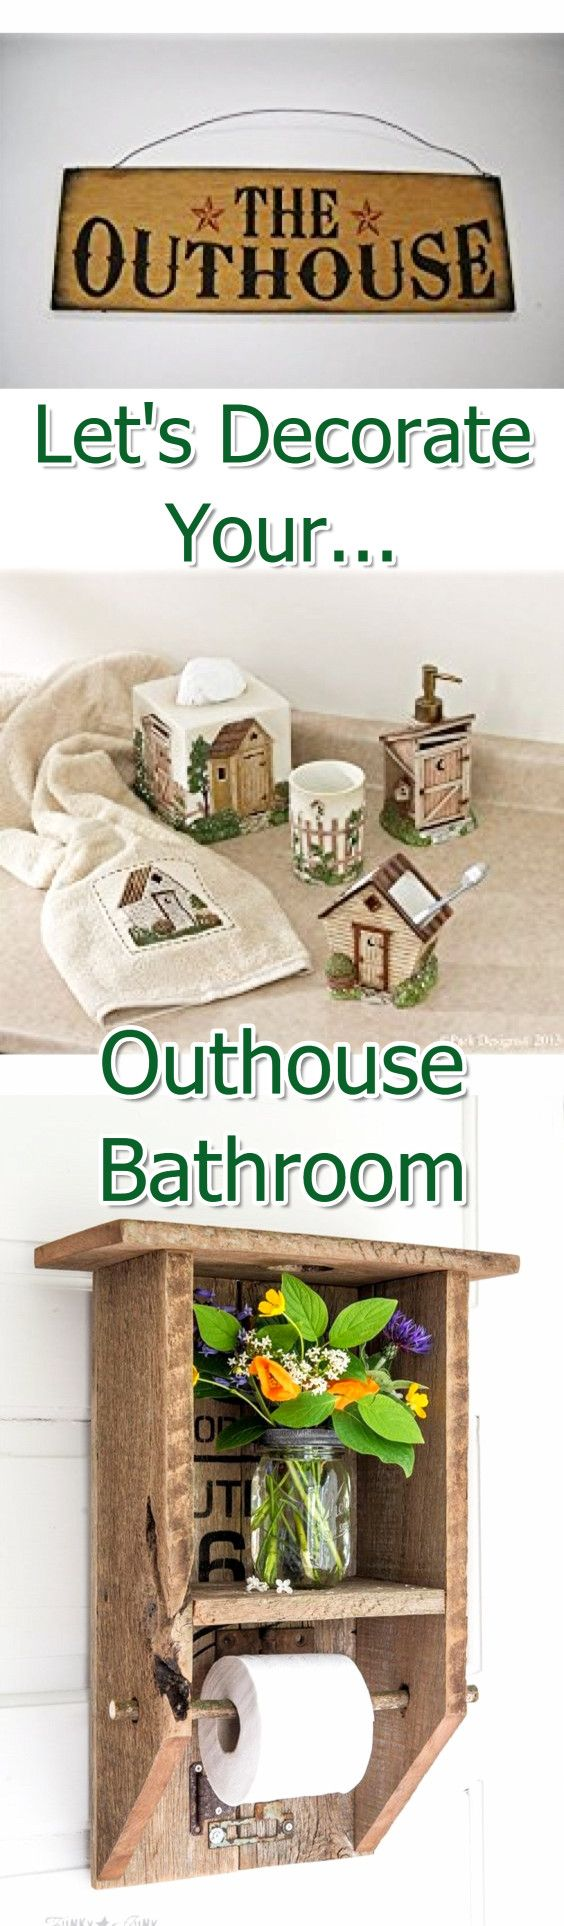 I've always wanted to decorate our guest bathroom like an outhouse! These are great ideas!